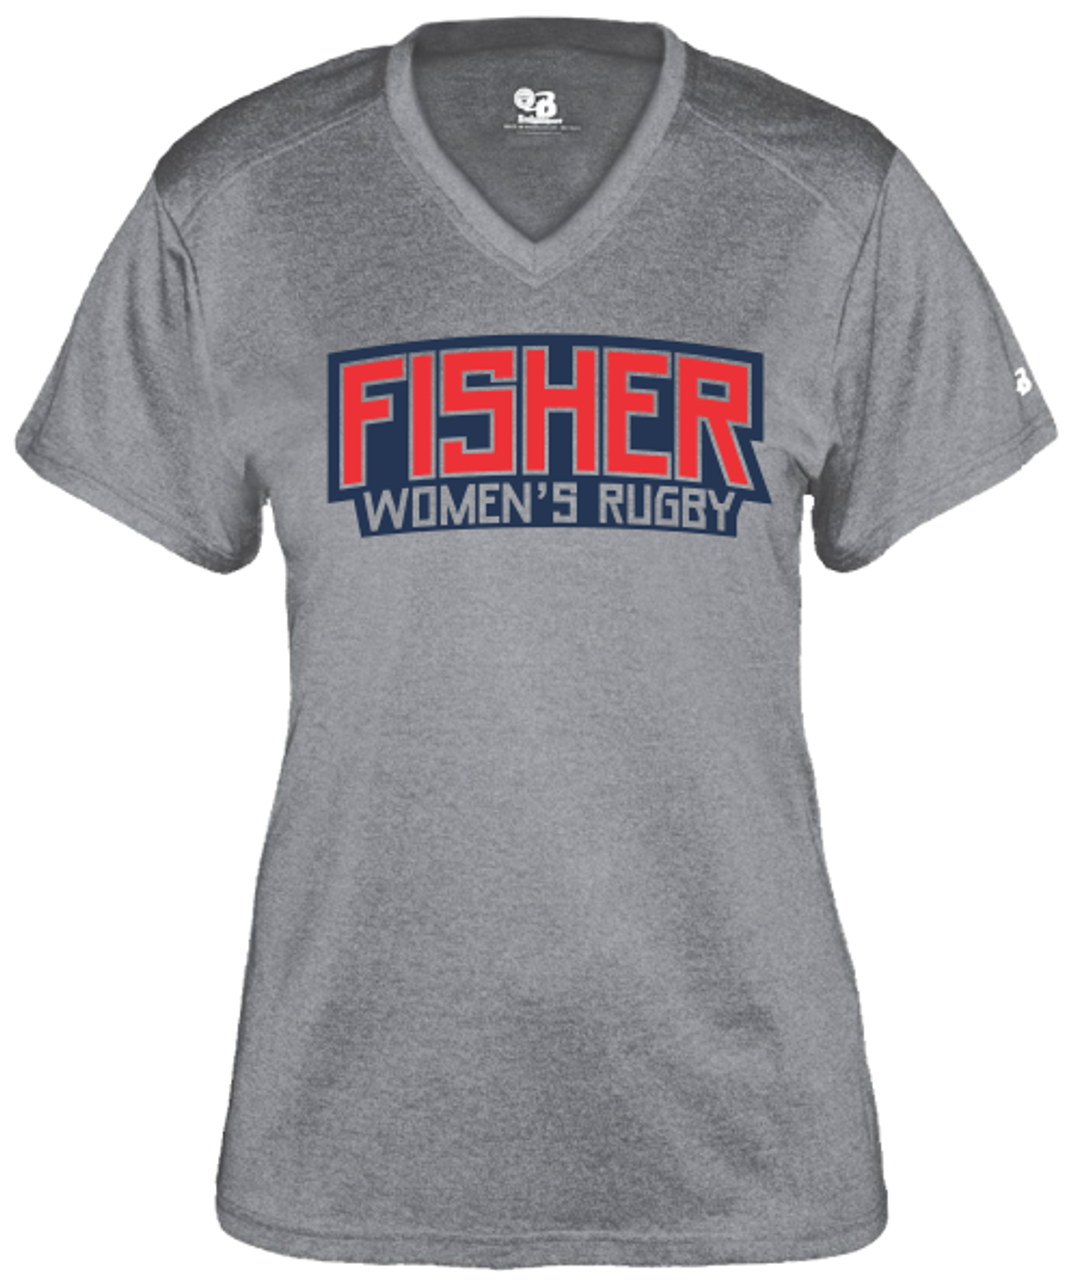 Fisher WRFC Performance Tee, Heather Gray